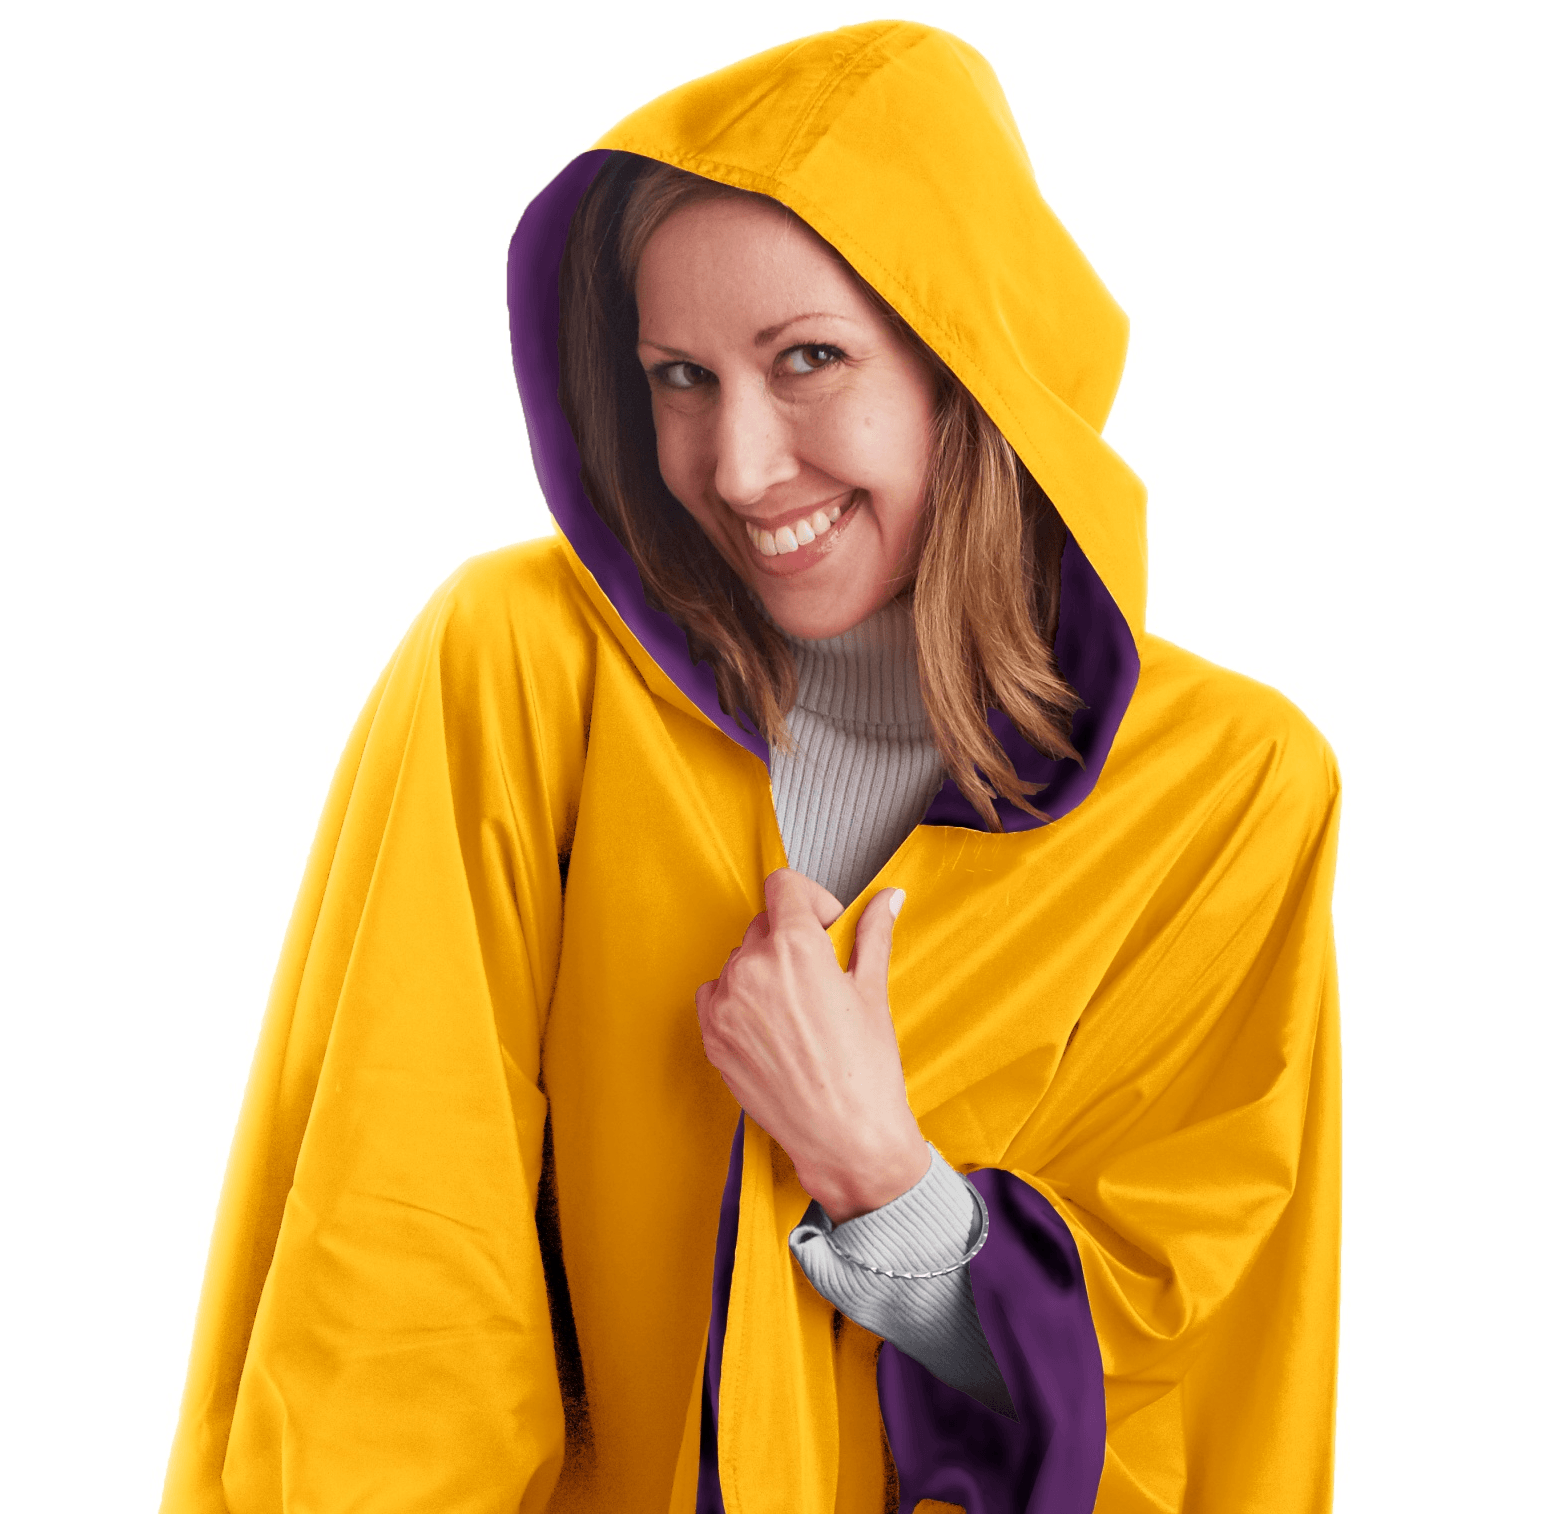 Woman wearing a SpiritCaper Purple & Gold Wind & Rainproof Cheer Cape with the Purple side out,revealing the Gold Wind color at the lapels and cuffs.